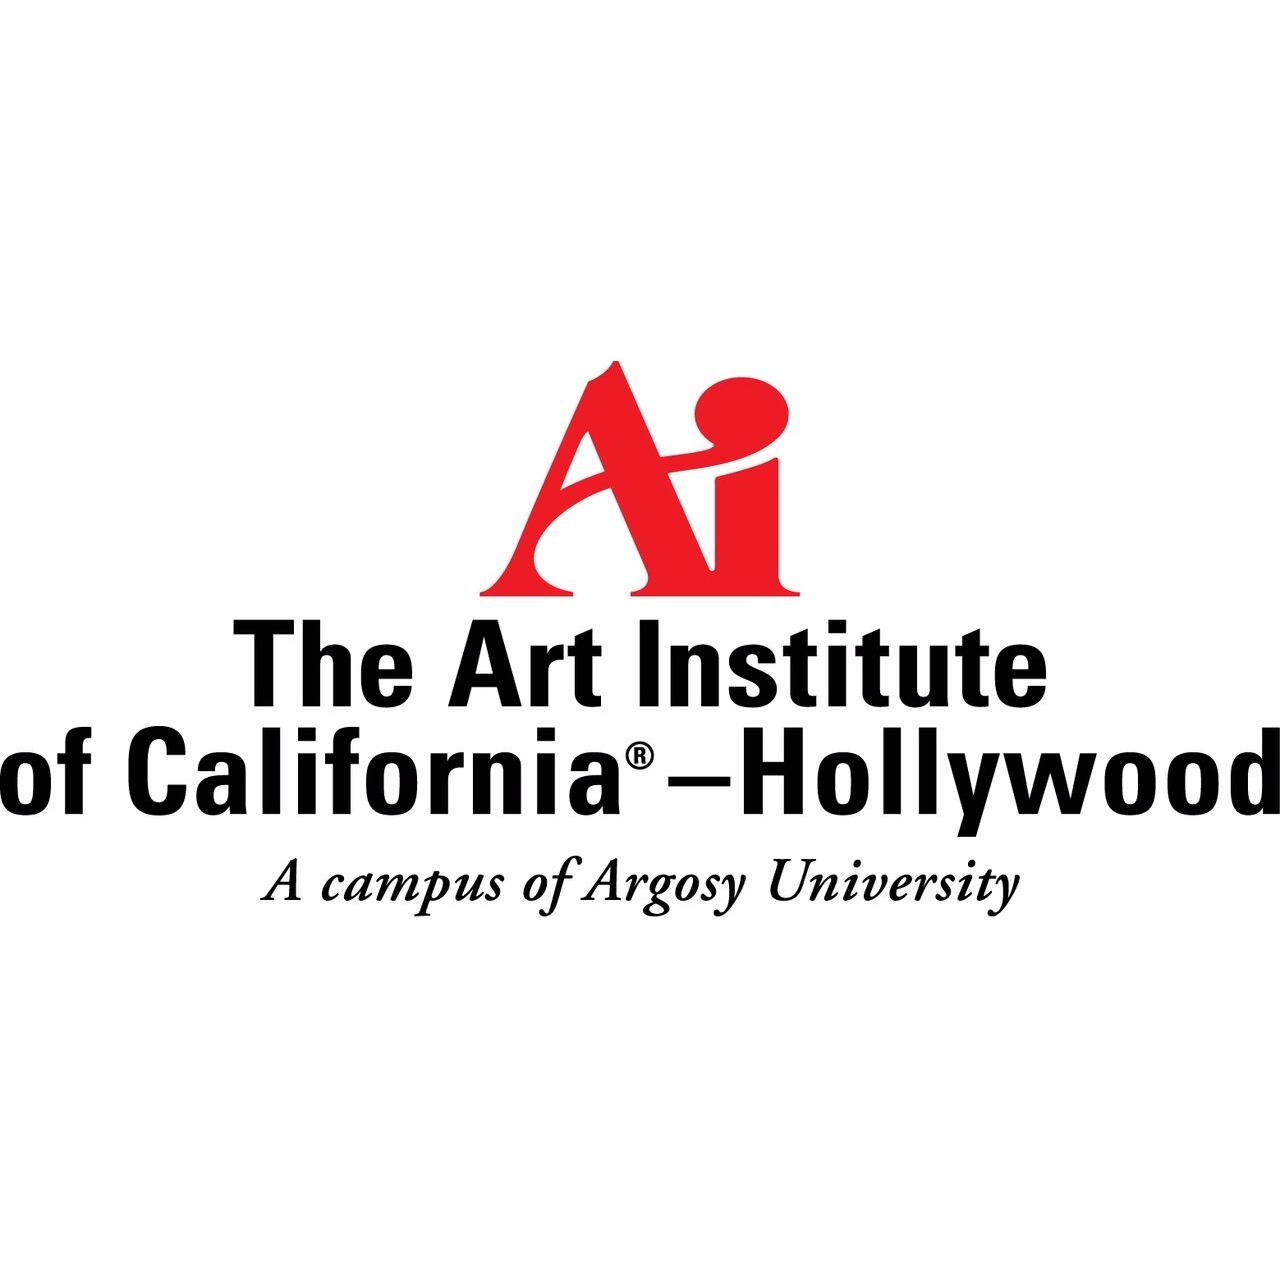 The Art Institute of California - Hollywood - North Hollywood, CA - Colleges & Universities